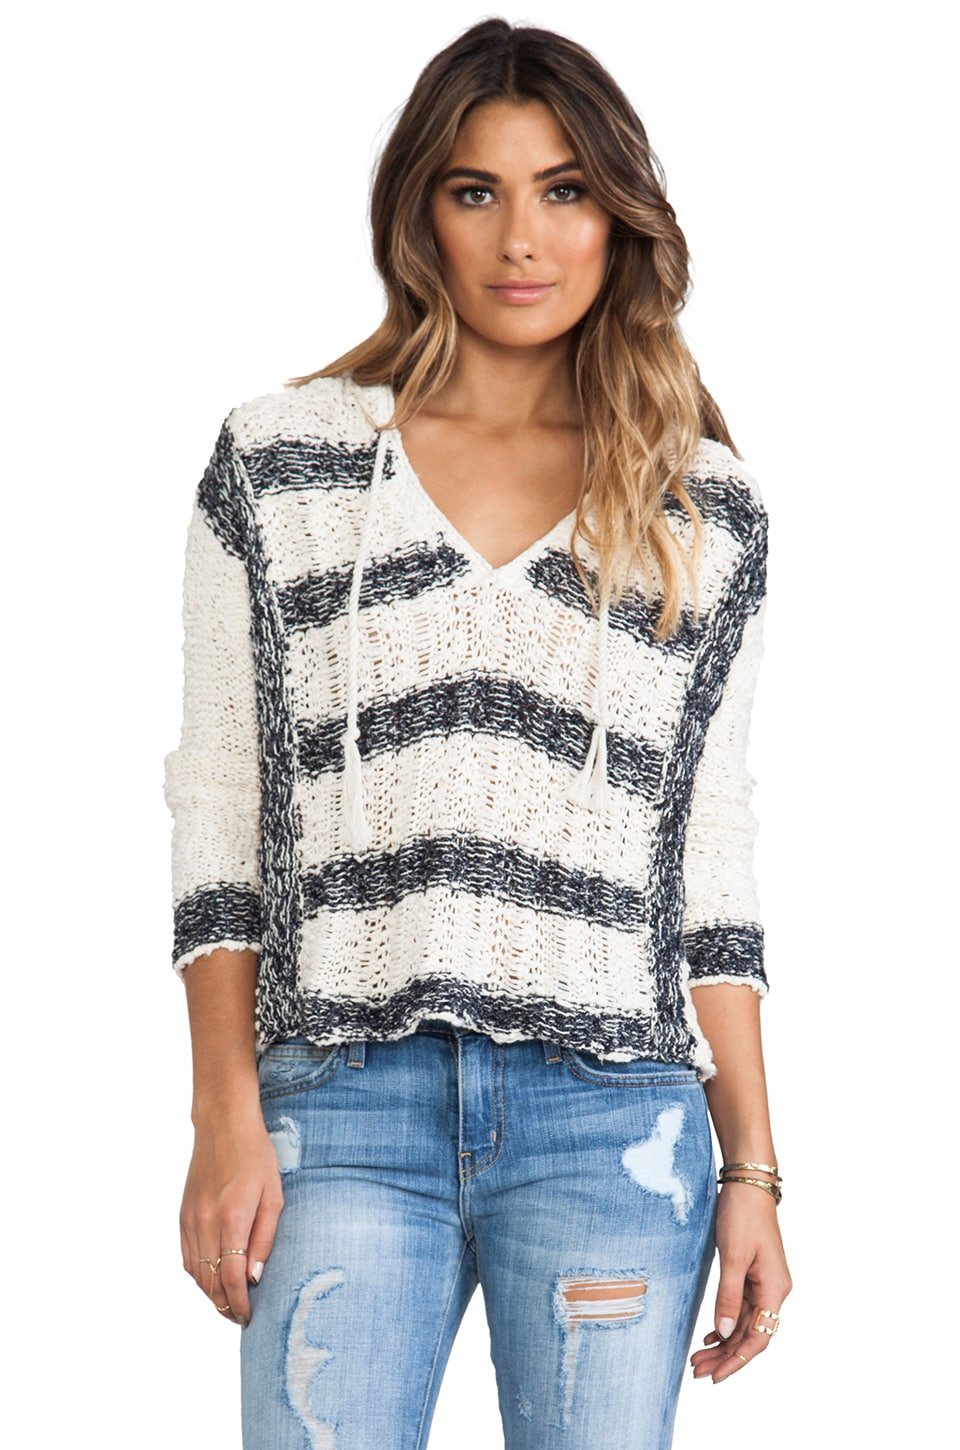 Free People Cali Love Sweater in Ivory Combo